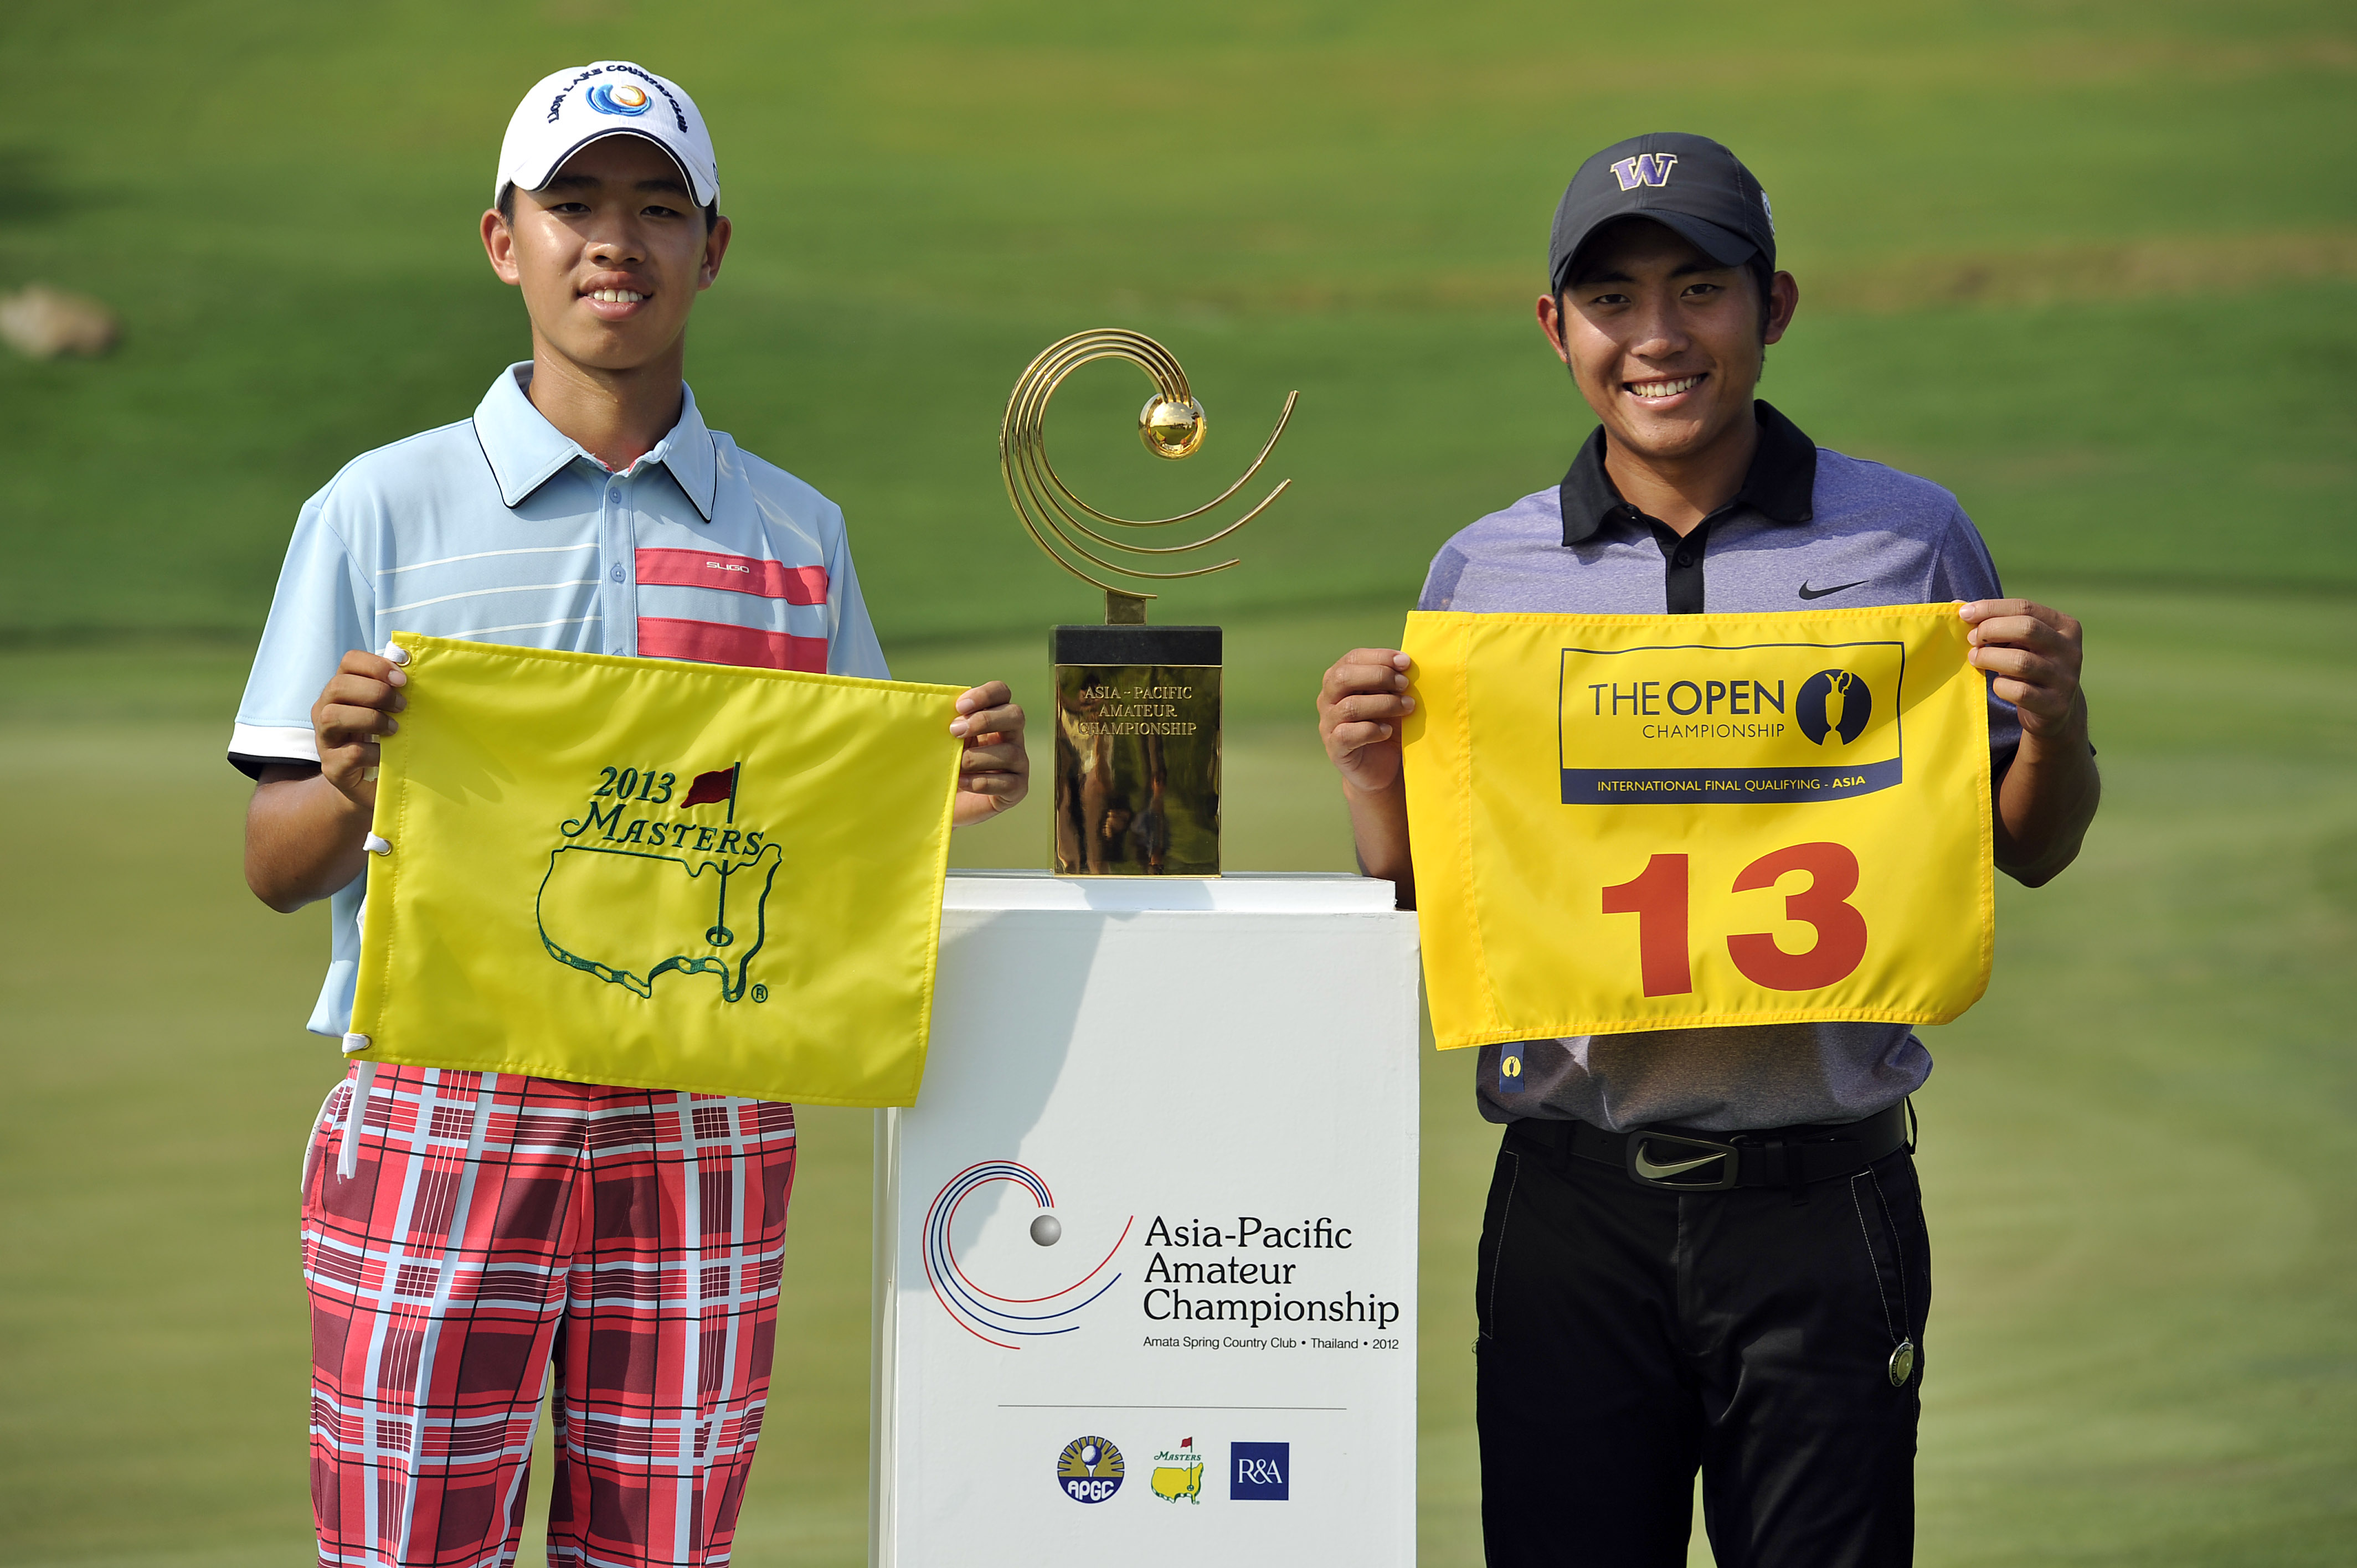 CHON BURI-THAILAND - Guan Tianlang of China, tournament winner, left and Cheng Tsung Pan of Chinese Taipei, runner-up pictured on November 4, 2012, during the final day of the 2012 Asia-Pacific Amateur Championship at Amata Spring Country Club, Chon Buri, Thailand. Photo by Paul Lakatos/AAC.